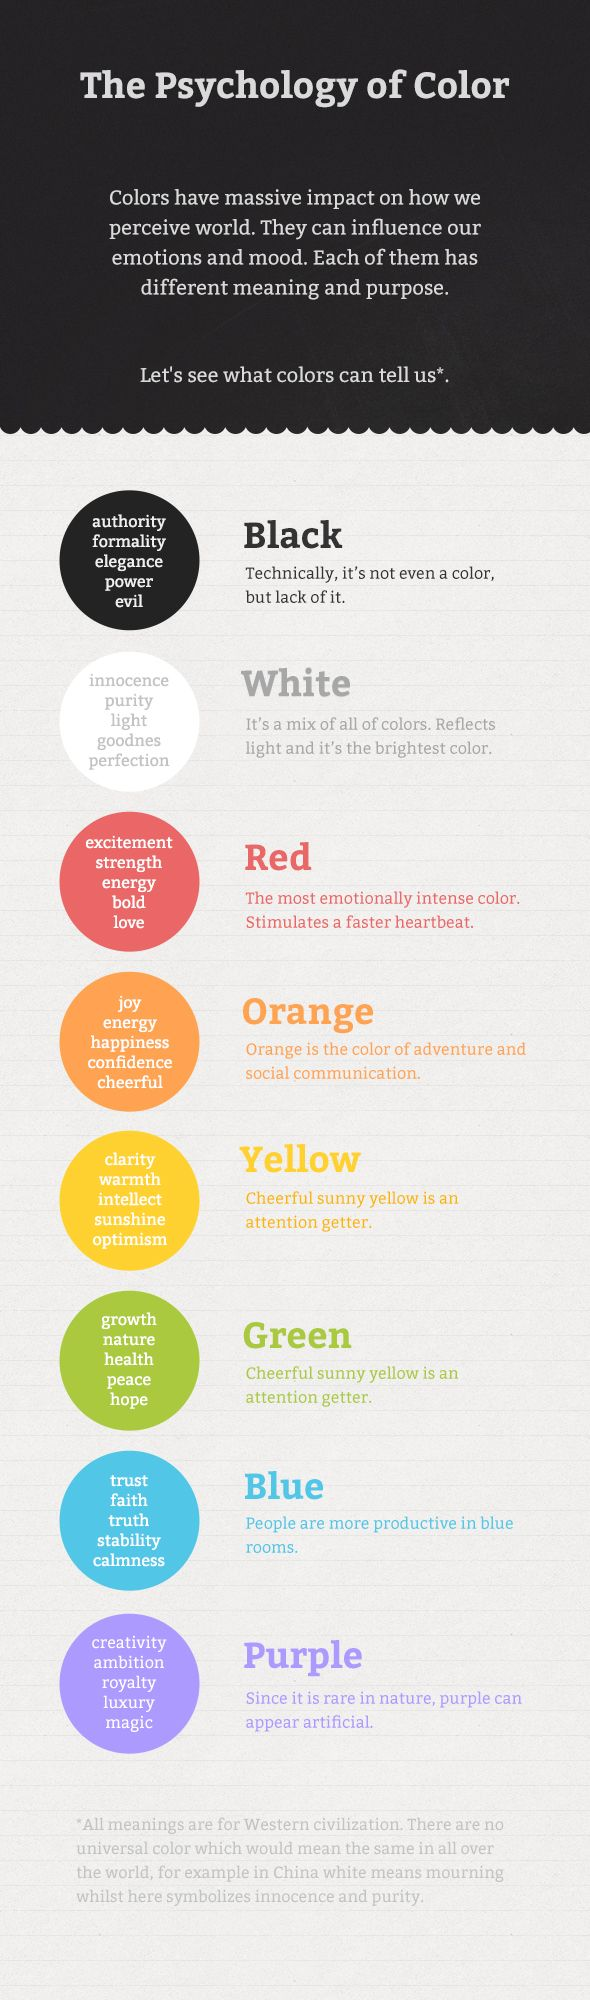 270 best images about Color meaning on Pinterest